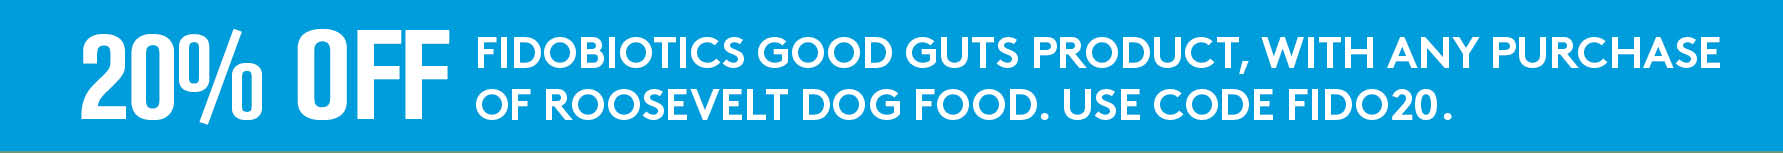 Buy any bag of Roosevelt dog food and get 20% off any Fidobiotics Good Guts product.